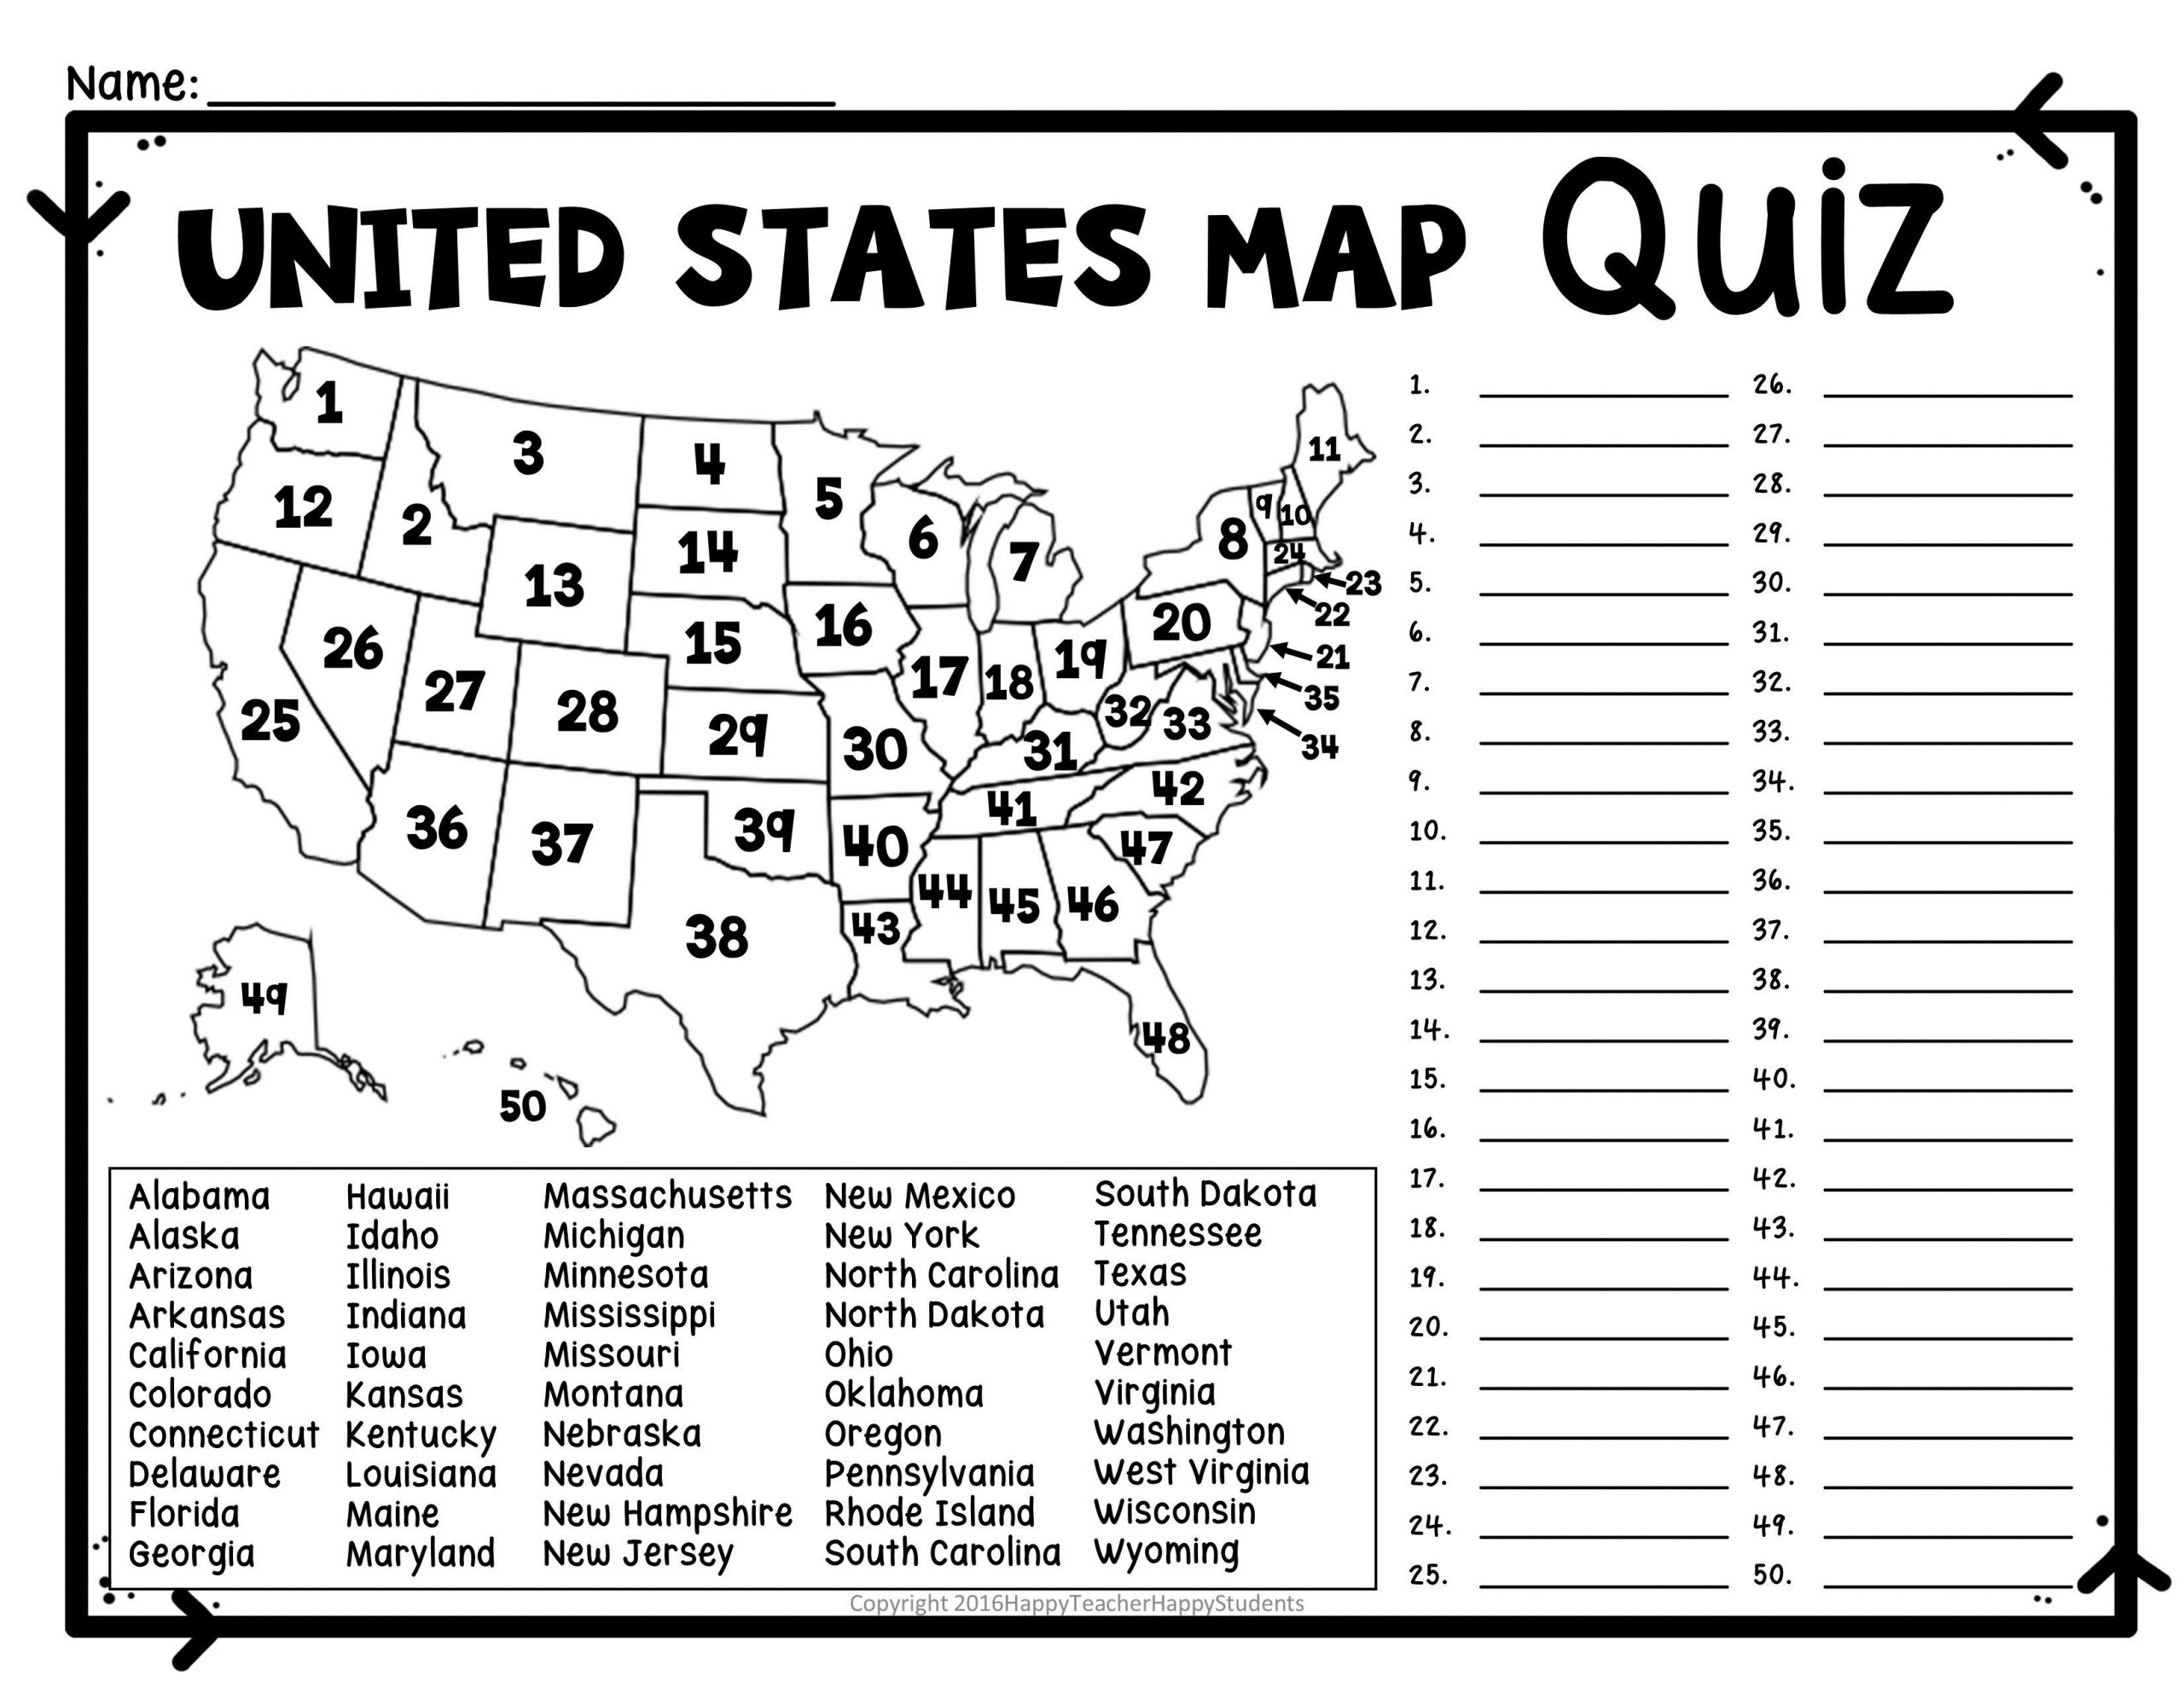 State Capitals Printable Quiz Blank Us Map with State Names Us Map Capitals Quiz Us Map